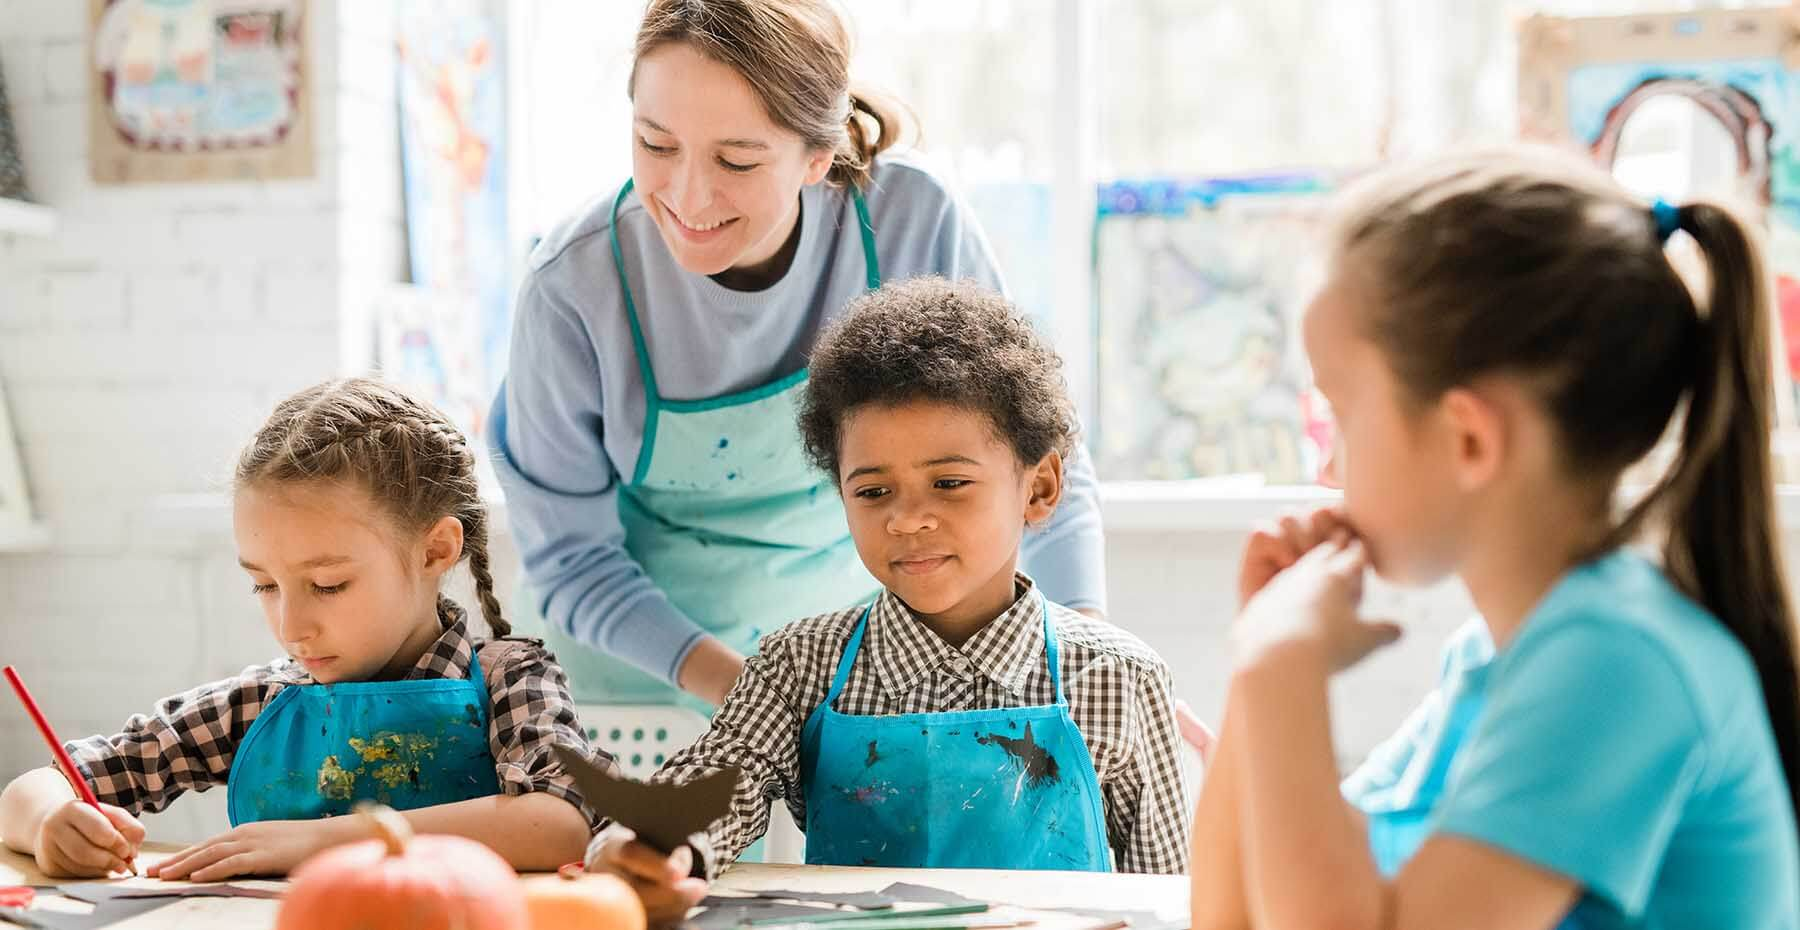 Children in aprons painting with teacher